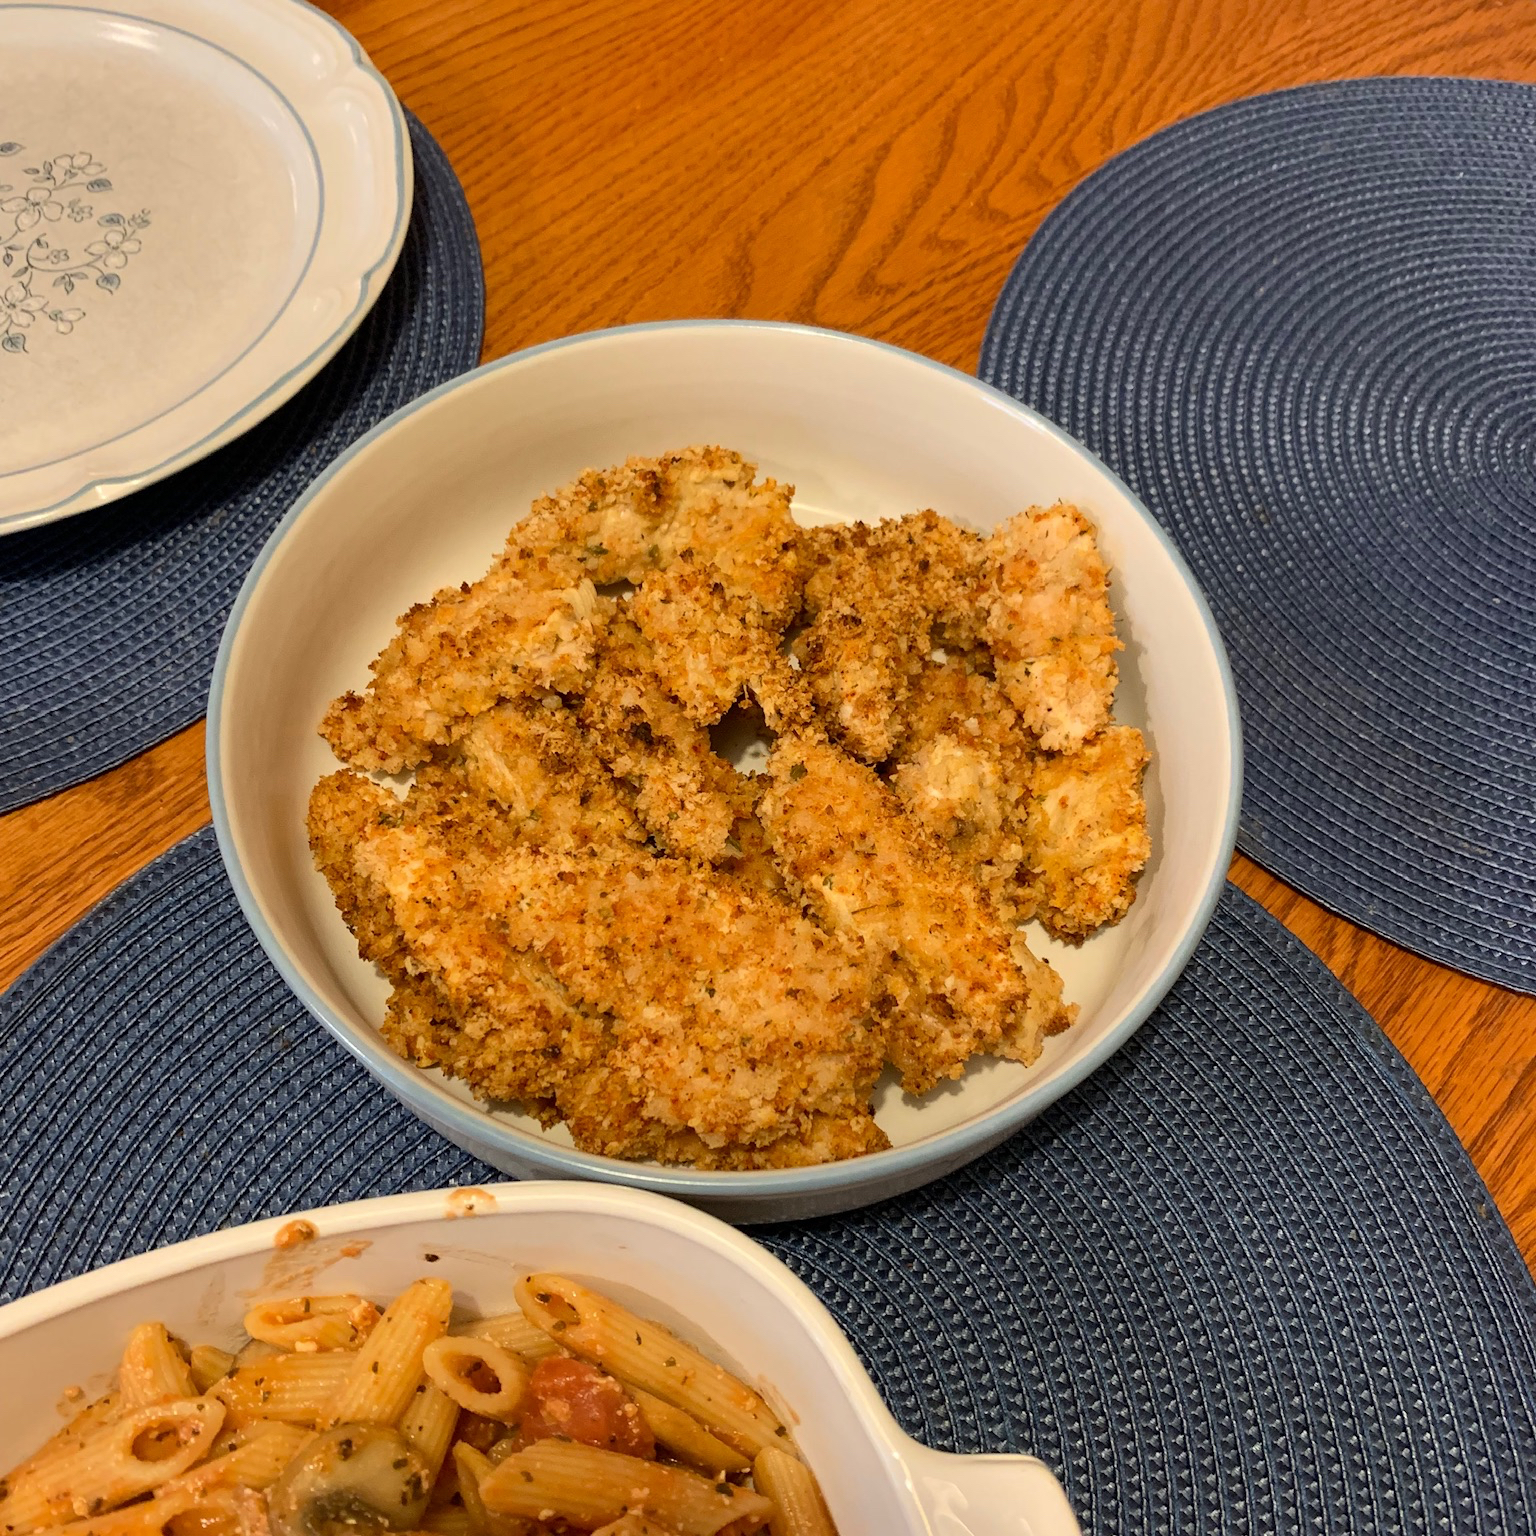 Baked Chicken Strips with Dijon and Panko Coating pianogirl28